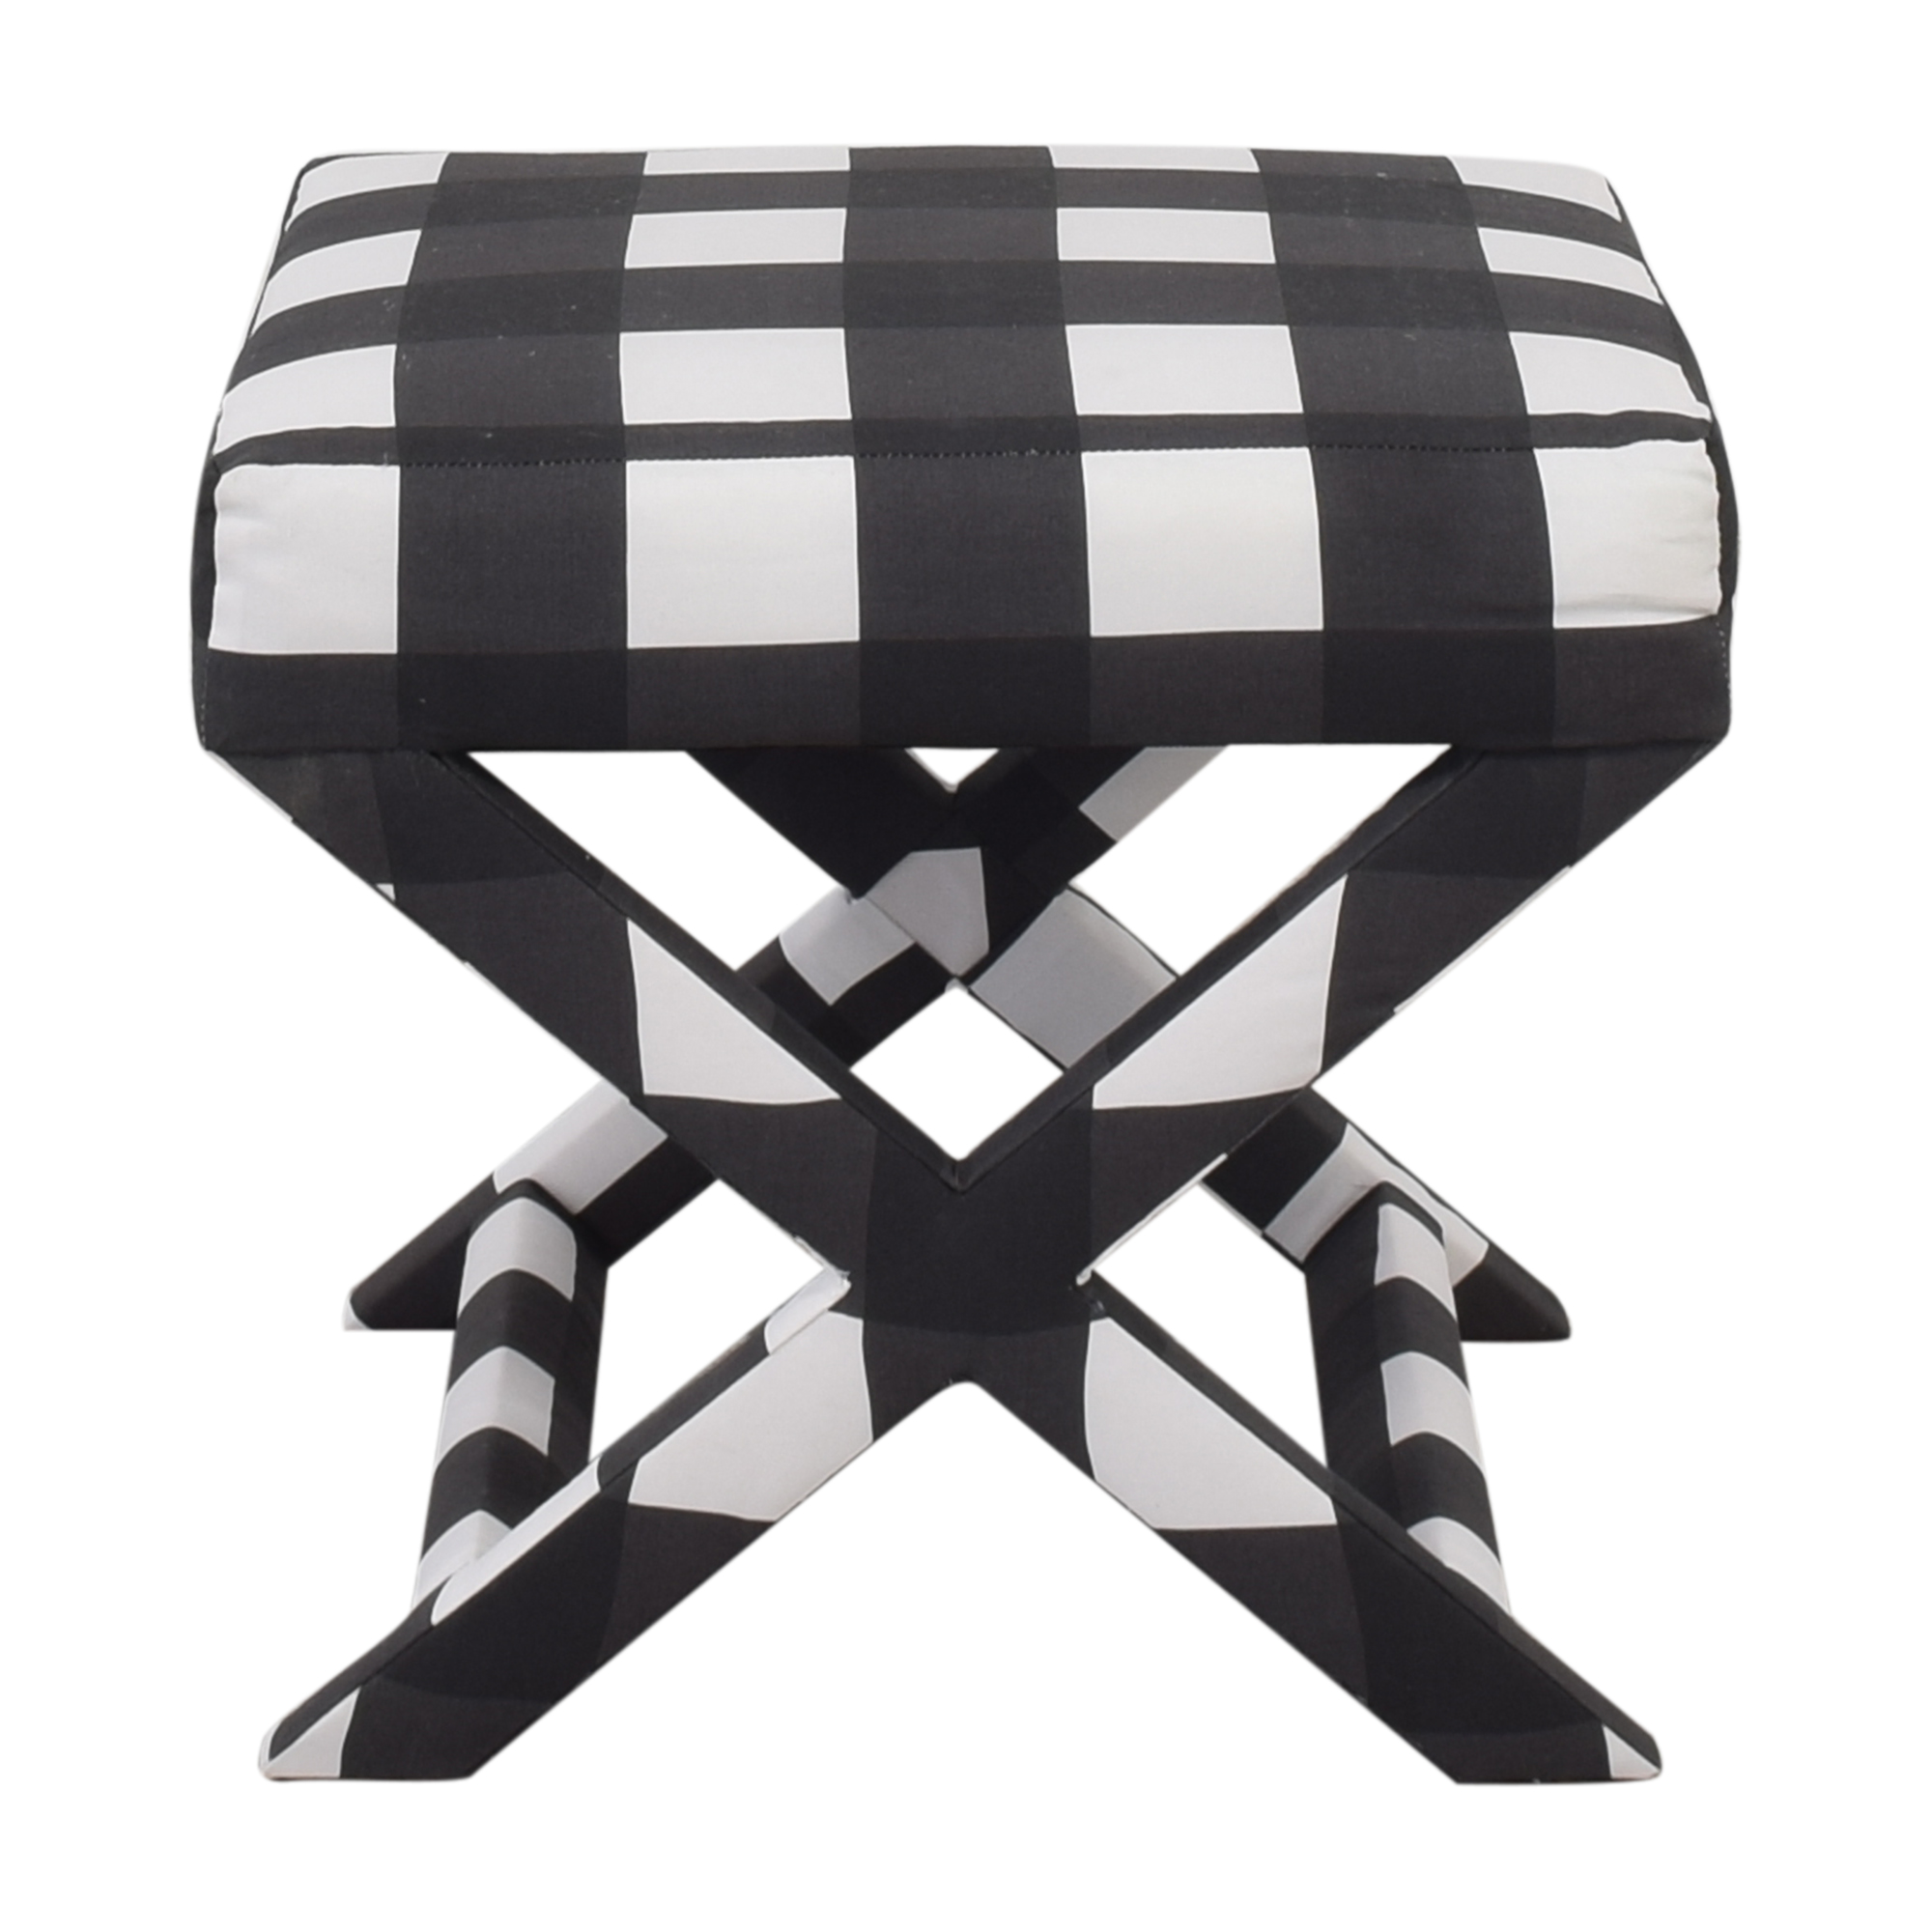 The Inside Black Check X-Bench sale